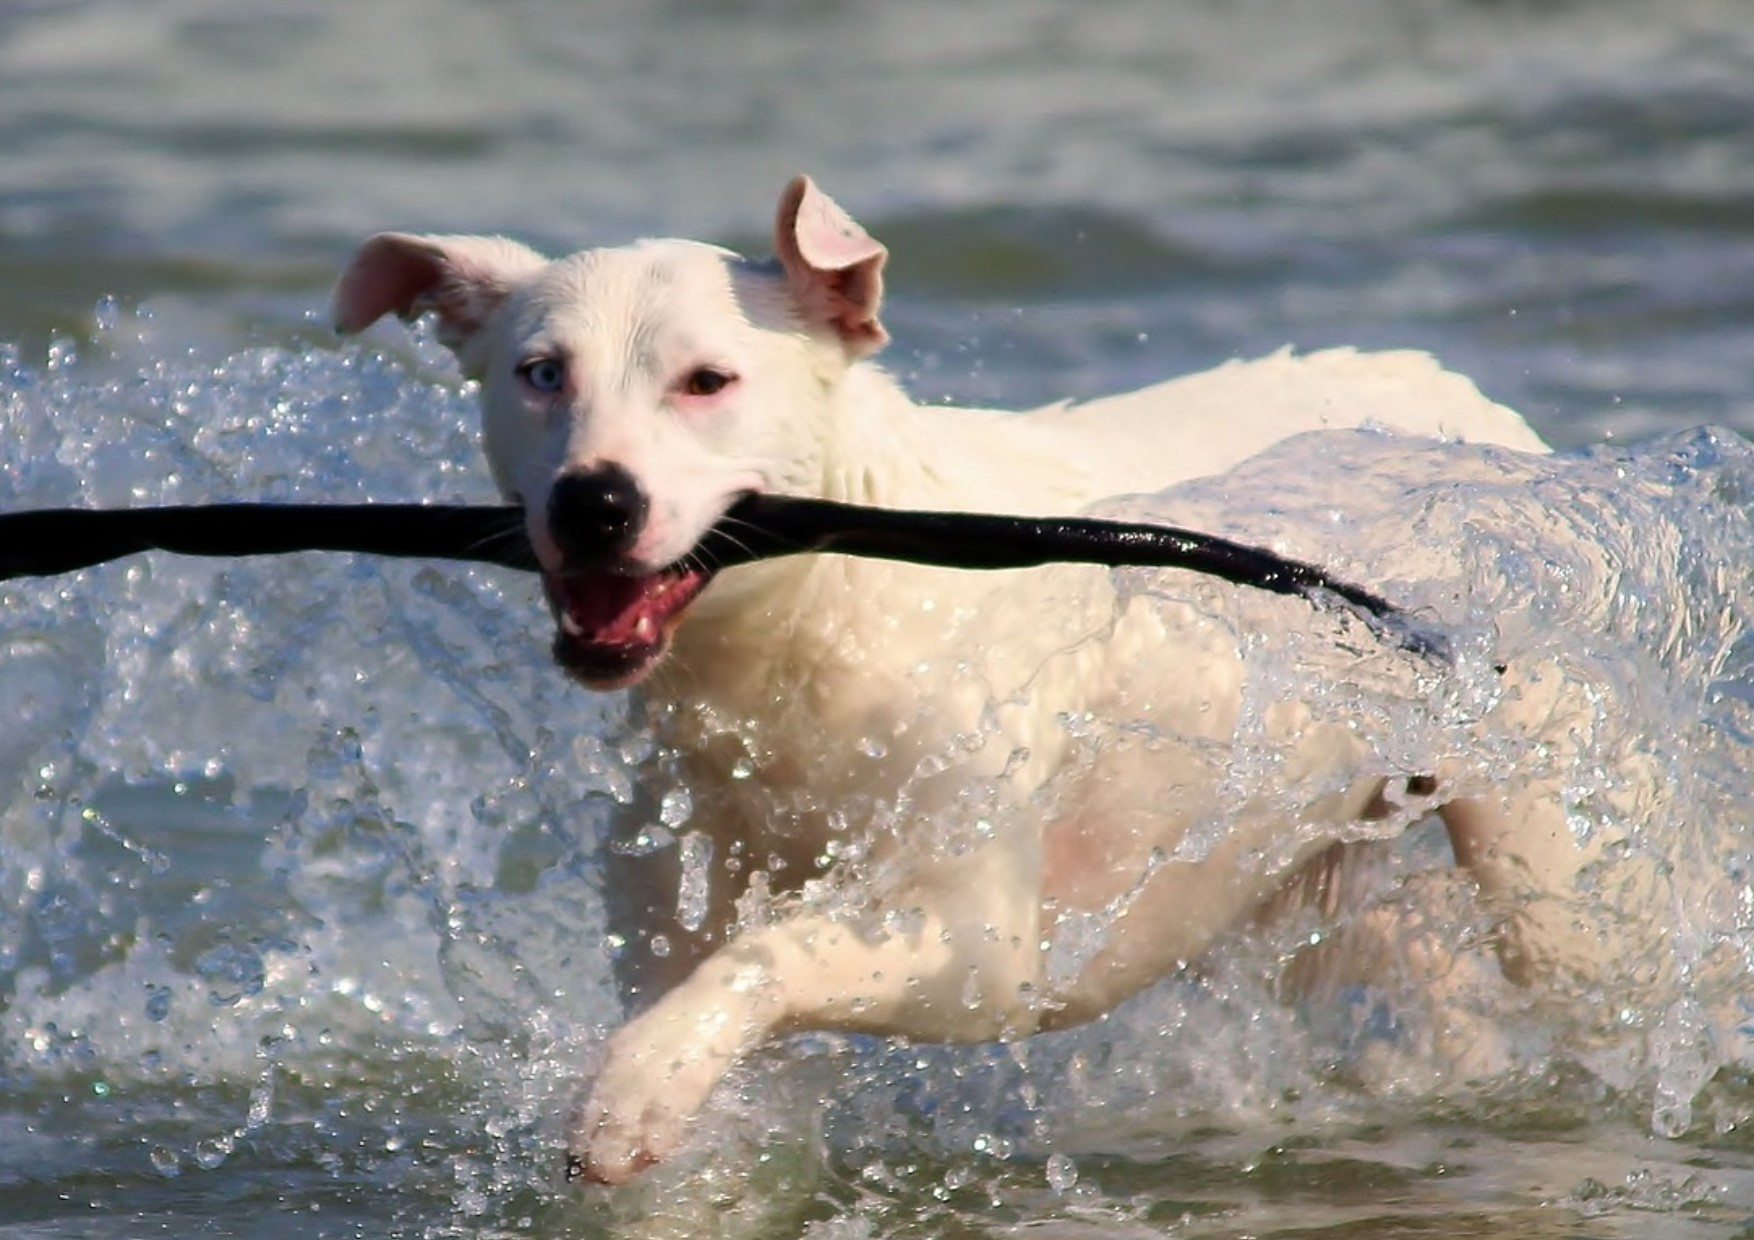 One of the best beaches in the UK to walk your dog is right on your doorstep